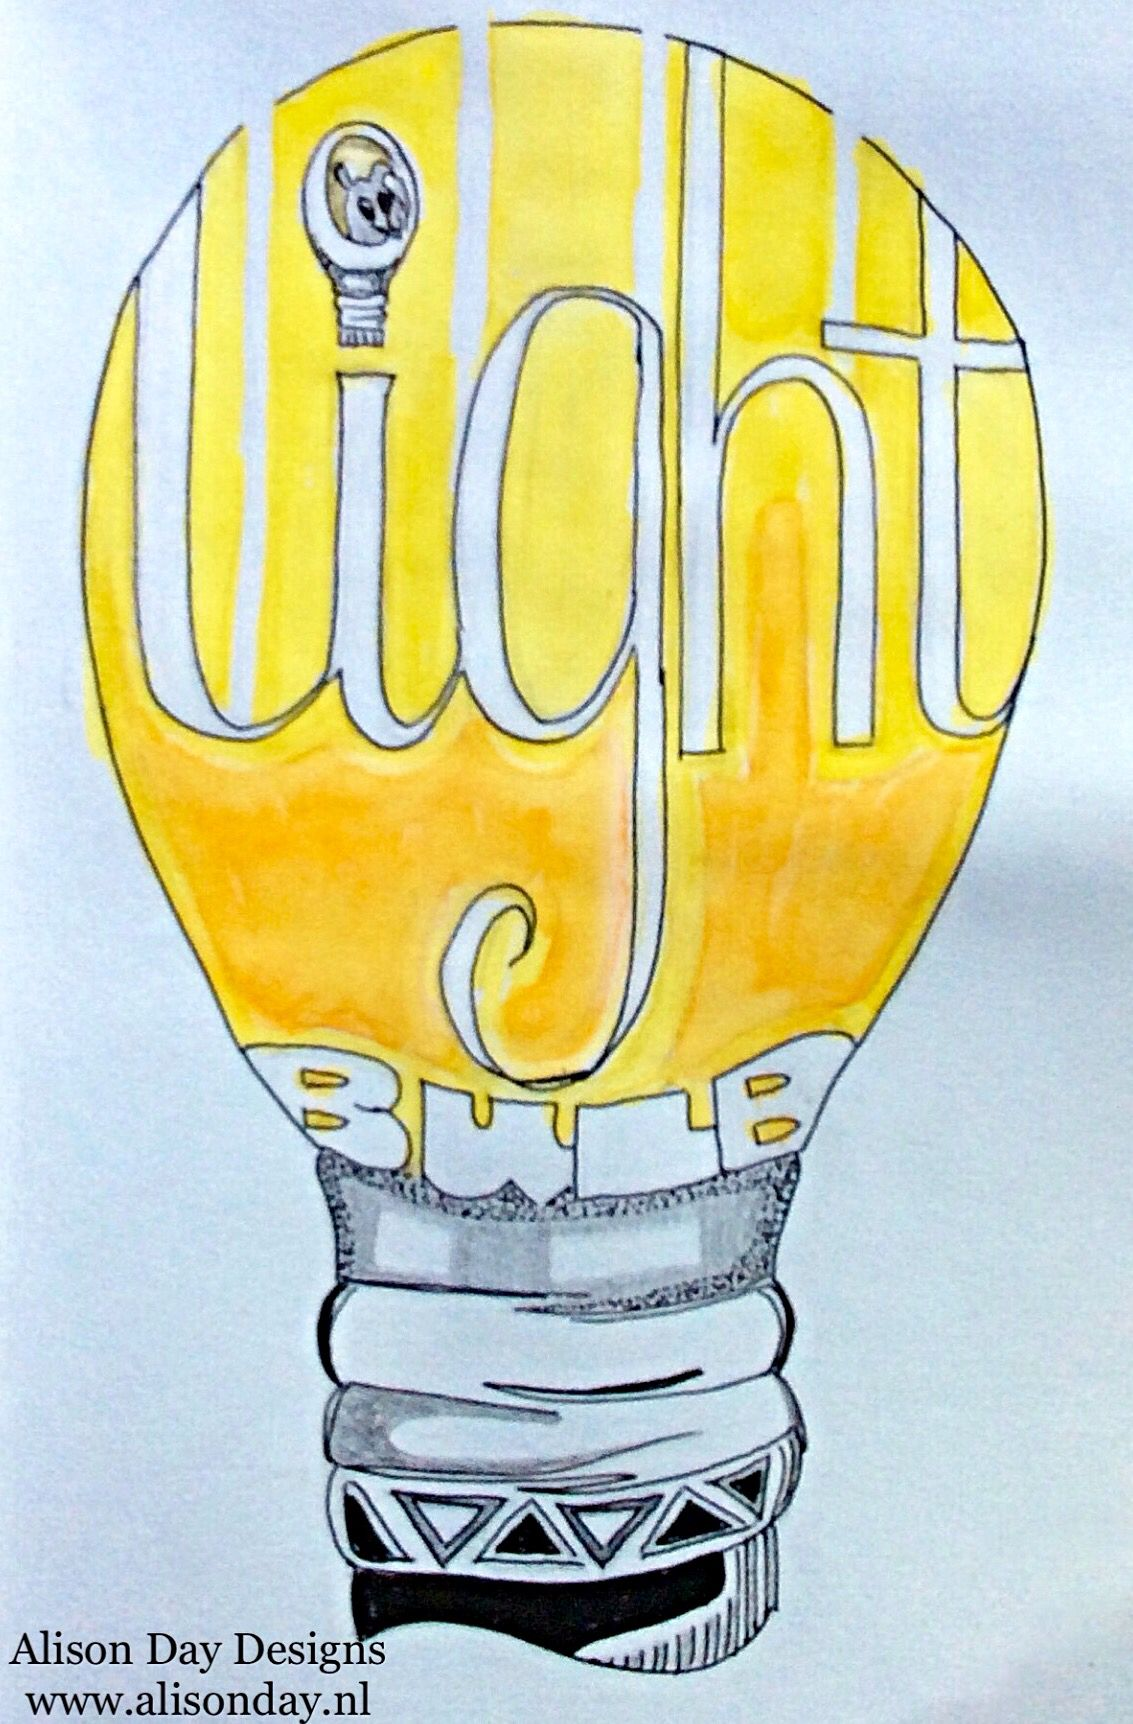 Light bulb by Alison Day